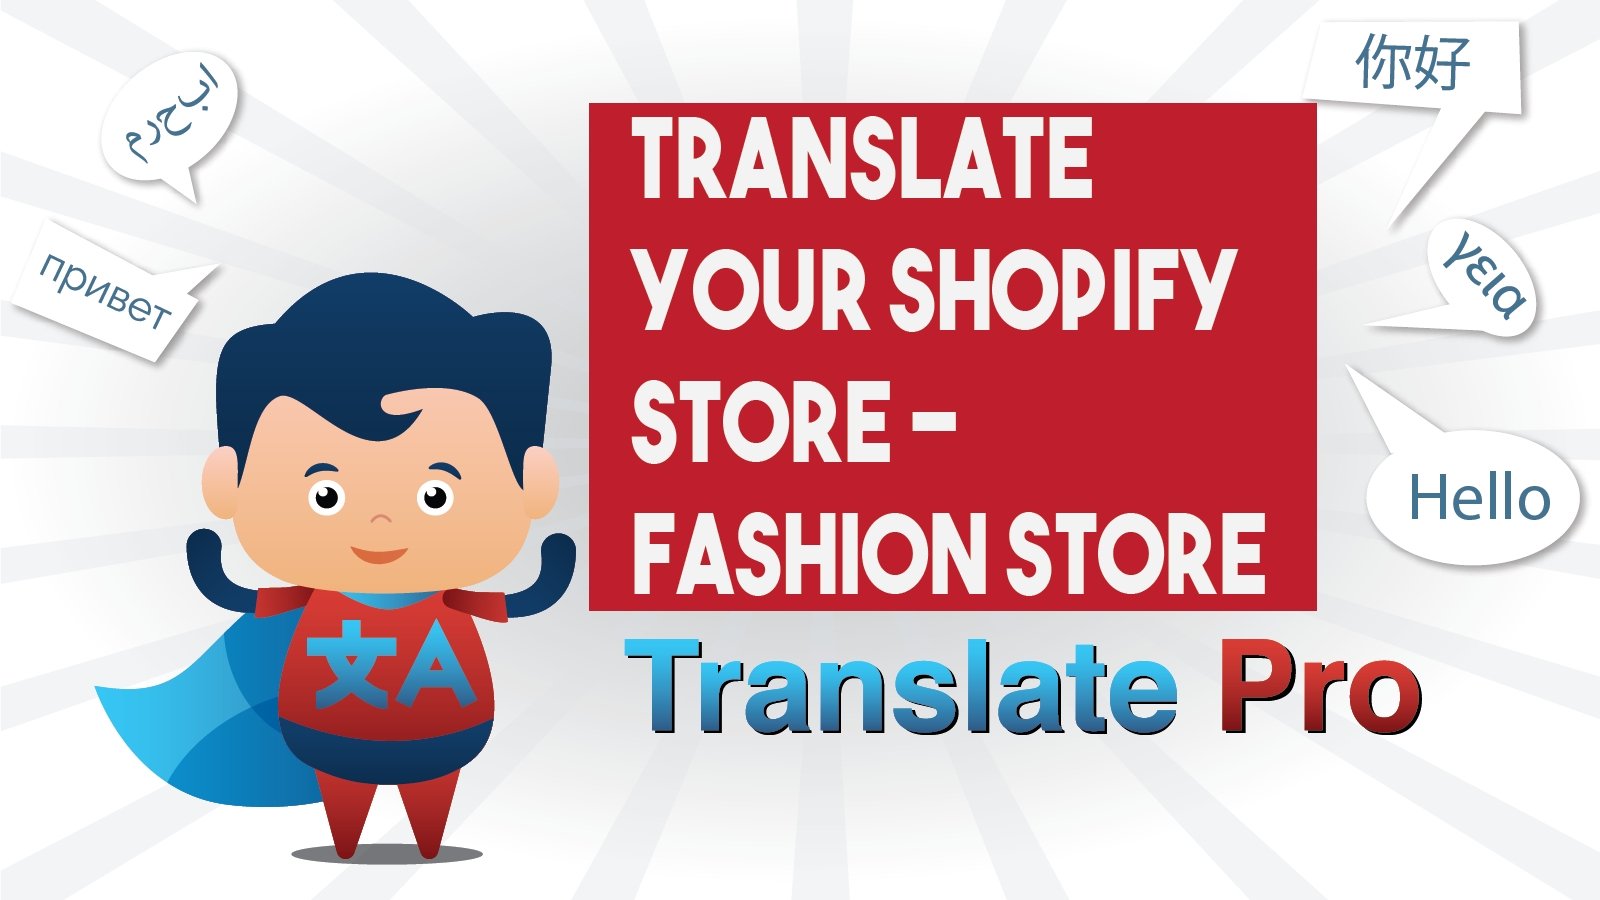 How To Translate Your Shopify Fashion Store